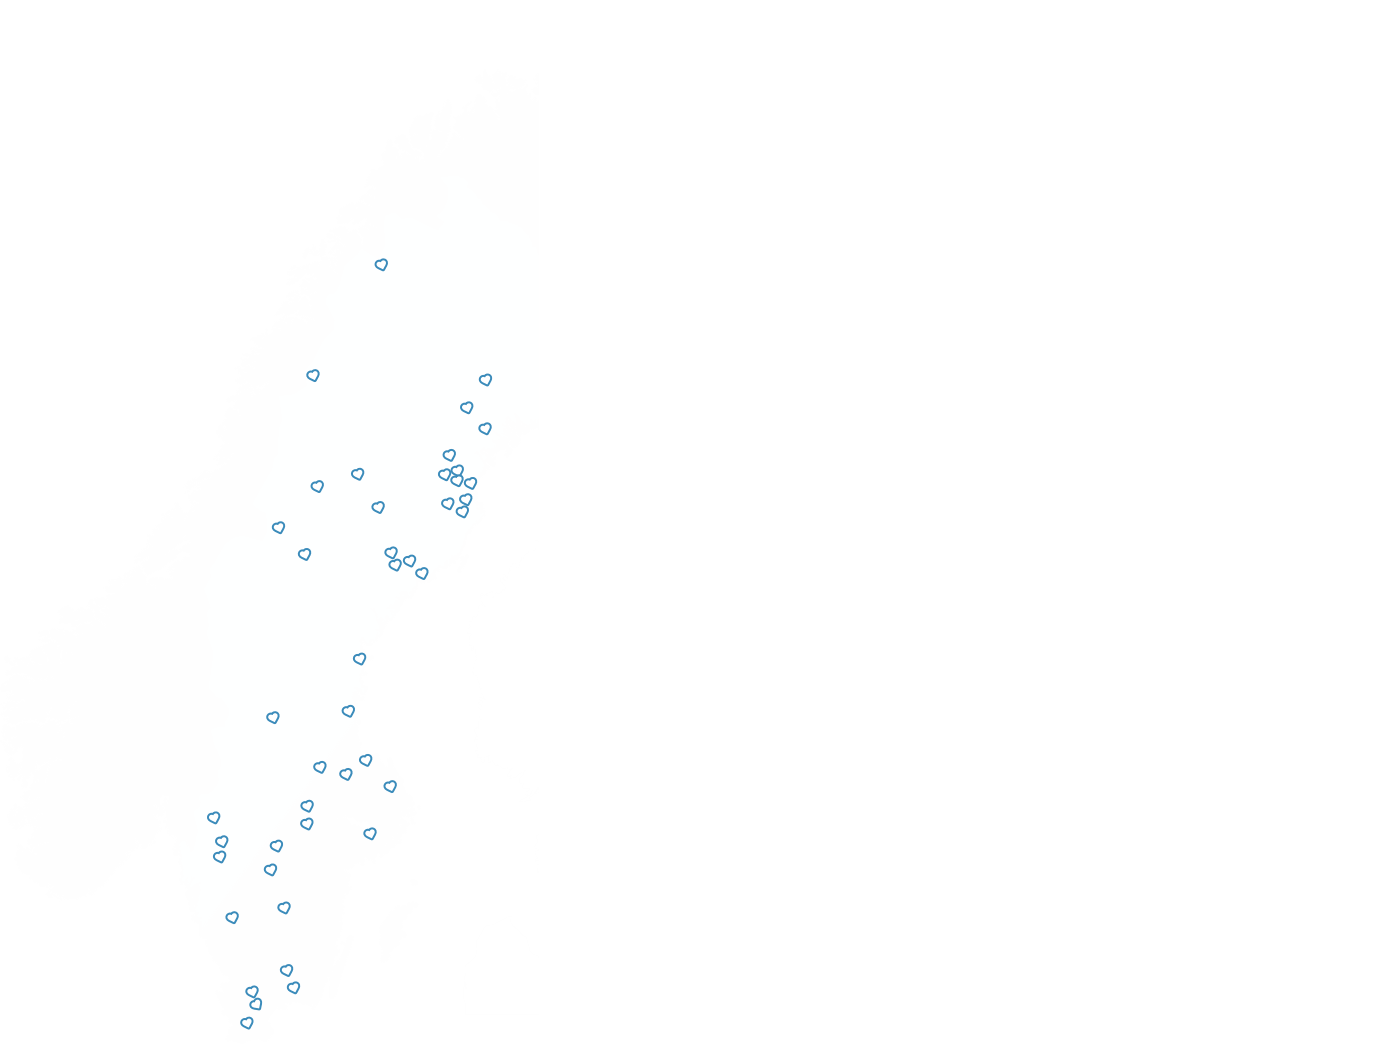 Map - layer 2